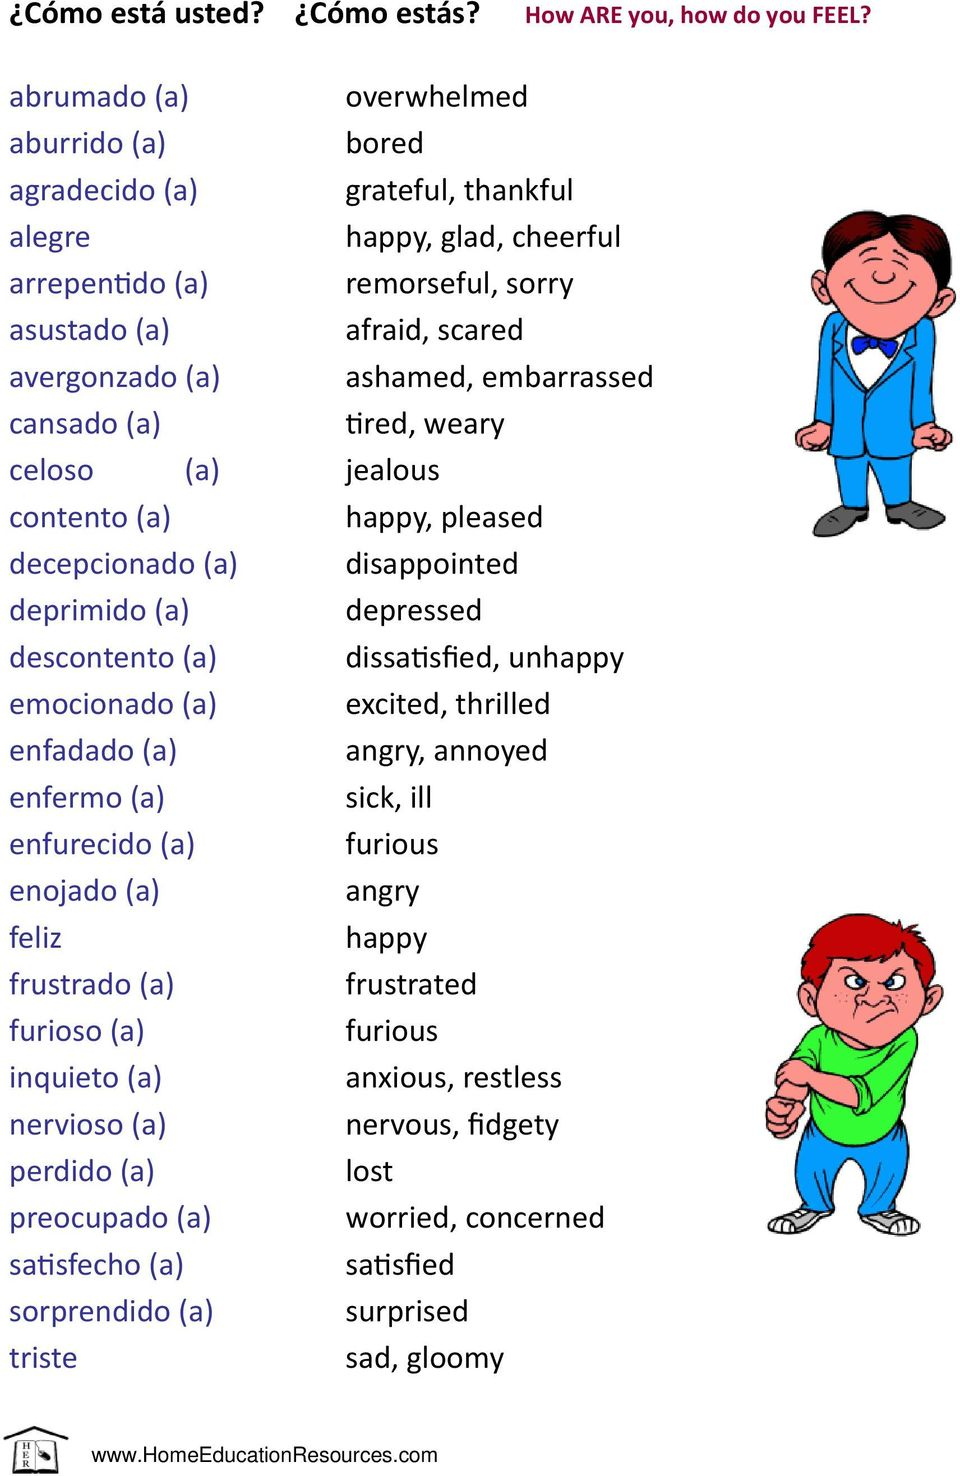 embarrassed cansado (a) red, weary celoso (a) jealous contento (a) happy, pleased decepcionado (a) disappointed deprimido (a) depressed descontento (a) dissa sfied, unhappy emocionado (a) excited,